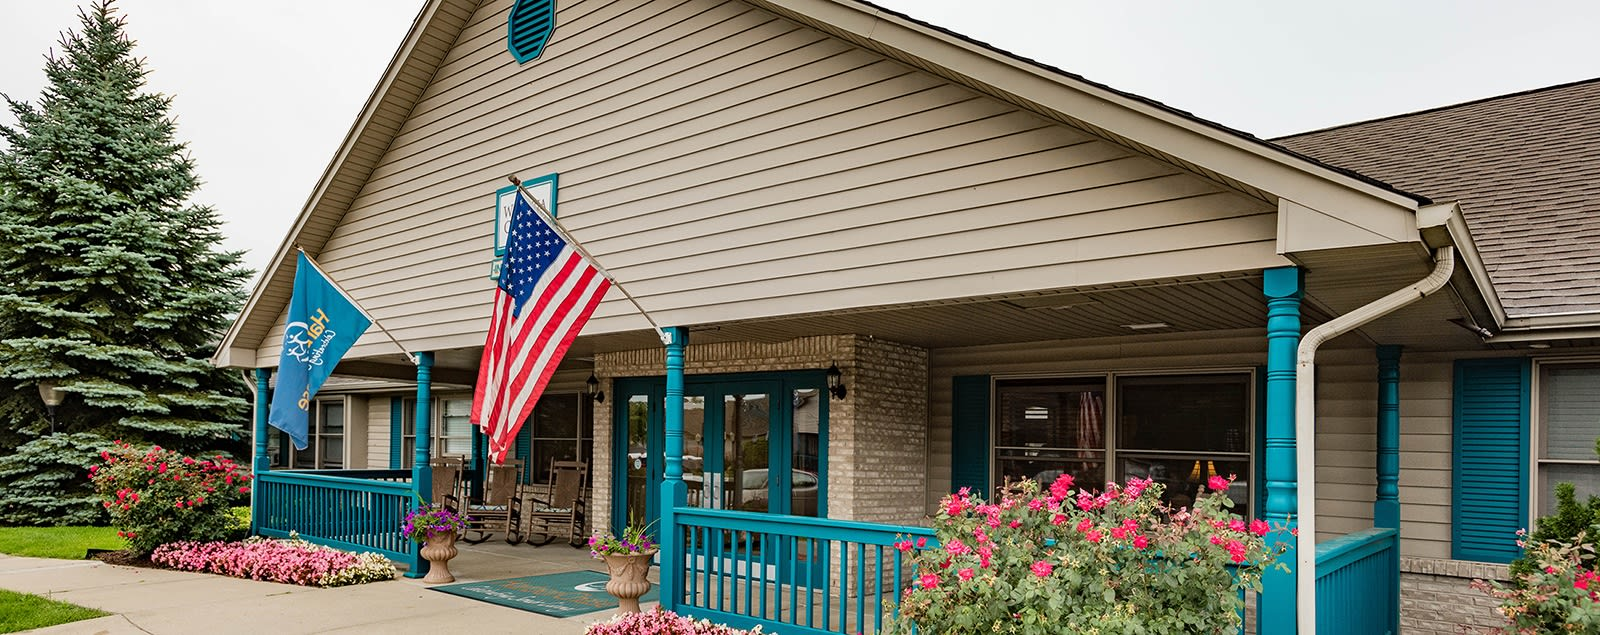 Schedule a senior living tour in Sterling Heights